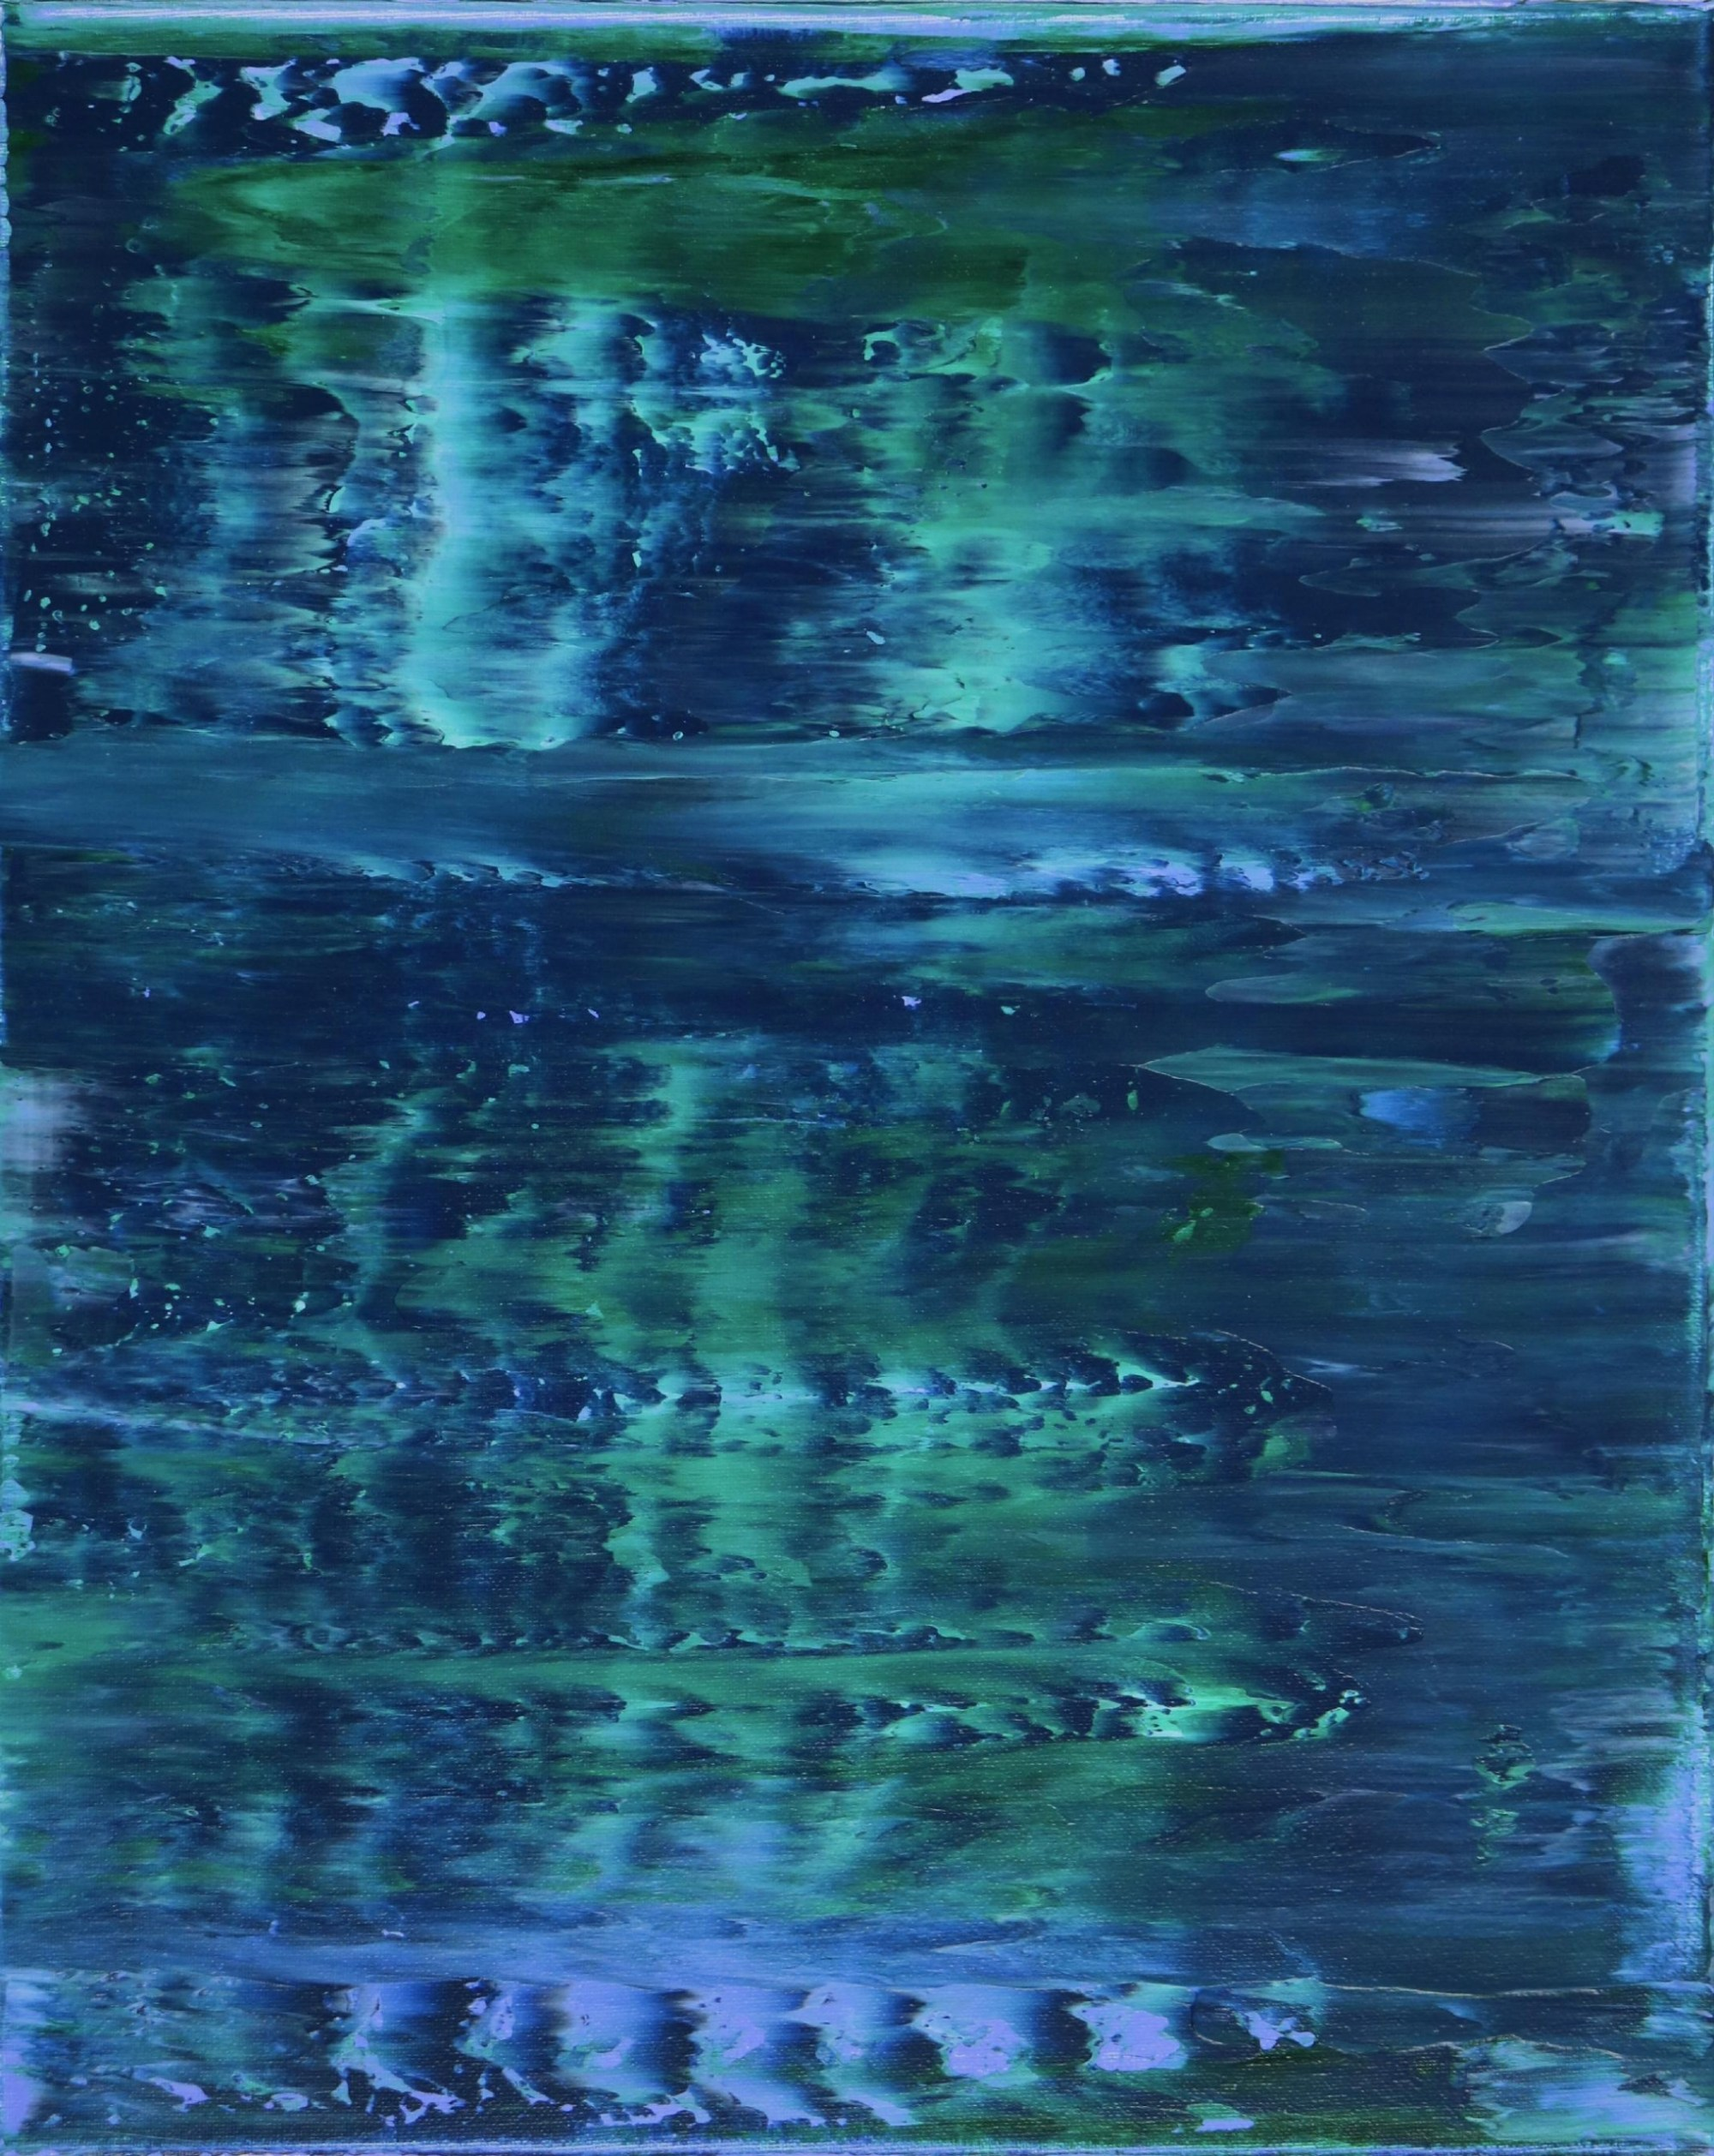 SOLD - Canvas 2 - Stormy Azure Night - Triptych (2020) by Nestor Toro in Los Angeles